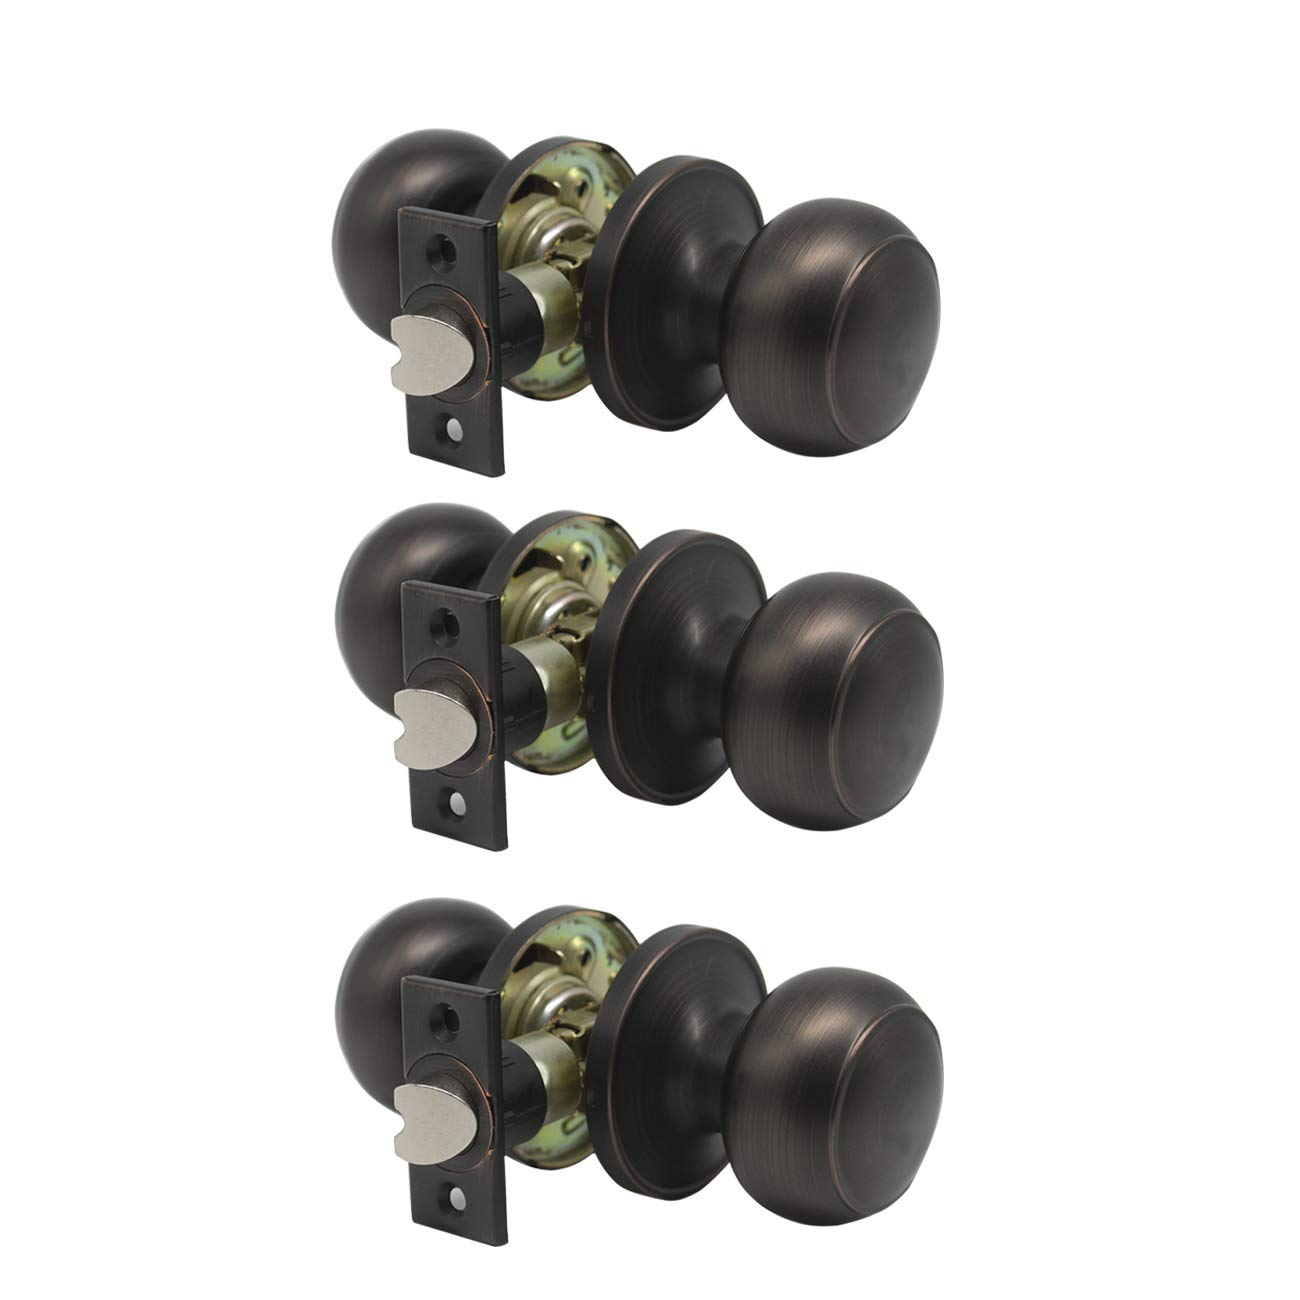 """Interior Keyless Passage Door Knobs Oil Rubbed Bronze with Adjustable Latch for 1-3/8""""to1-3/4 Thickness Doors (Package of 3)"""